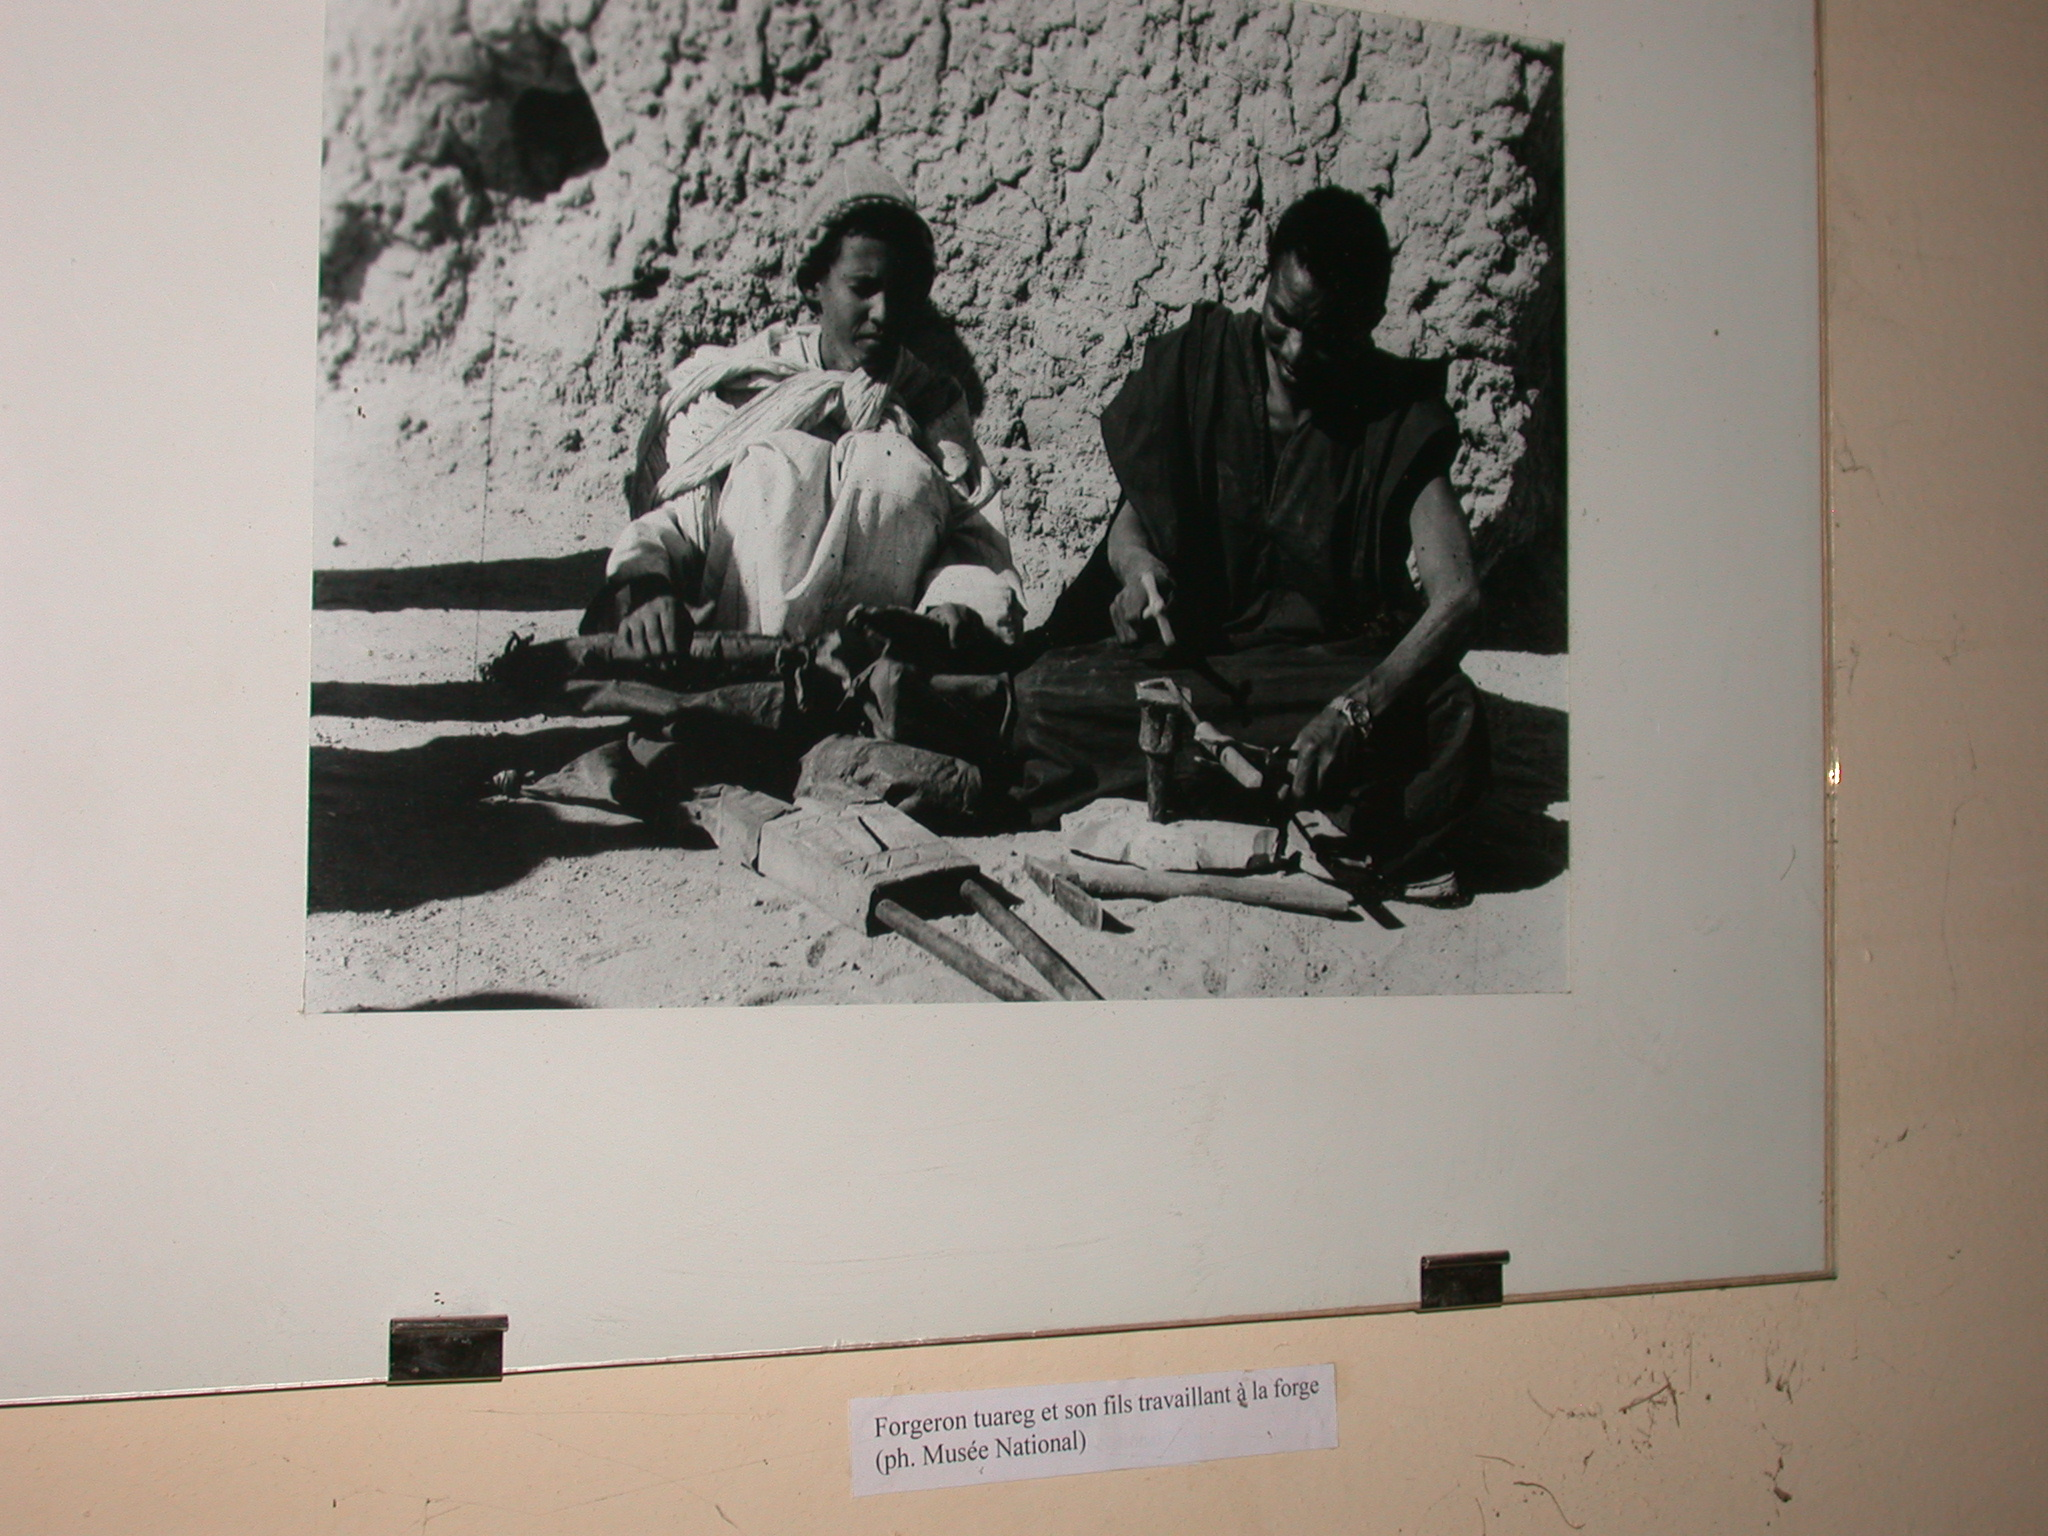 Photo of Tuareg Blacksmith and His Son Working at the Forge, Timbuktu Ethnological Museum, Timbuktu, Mali